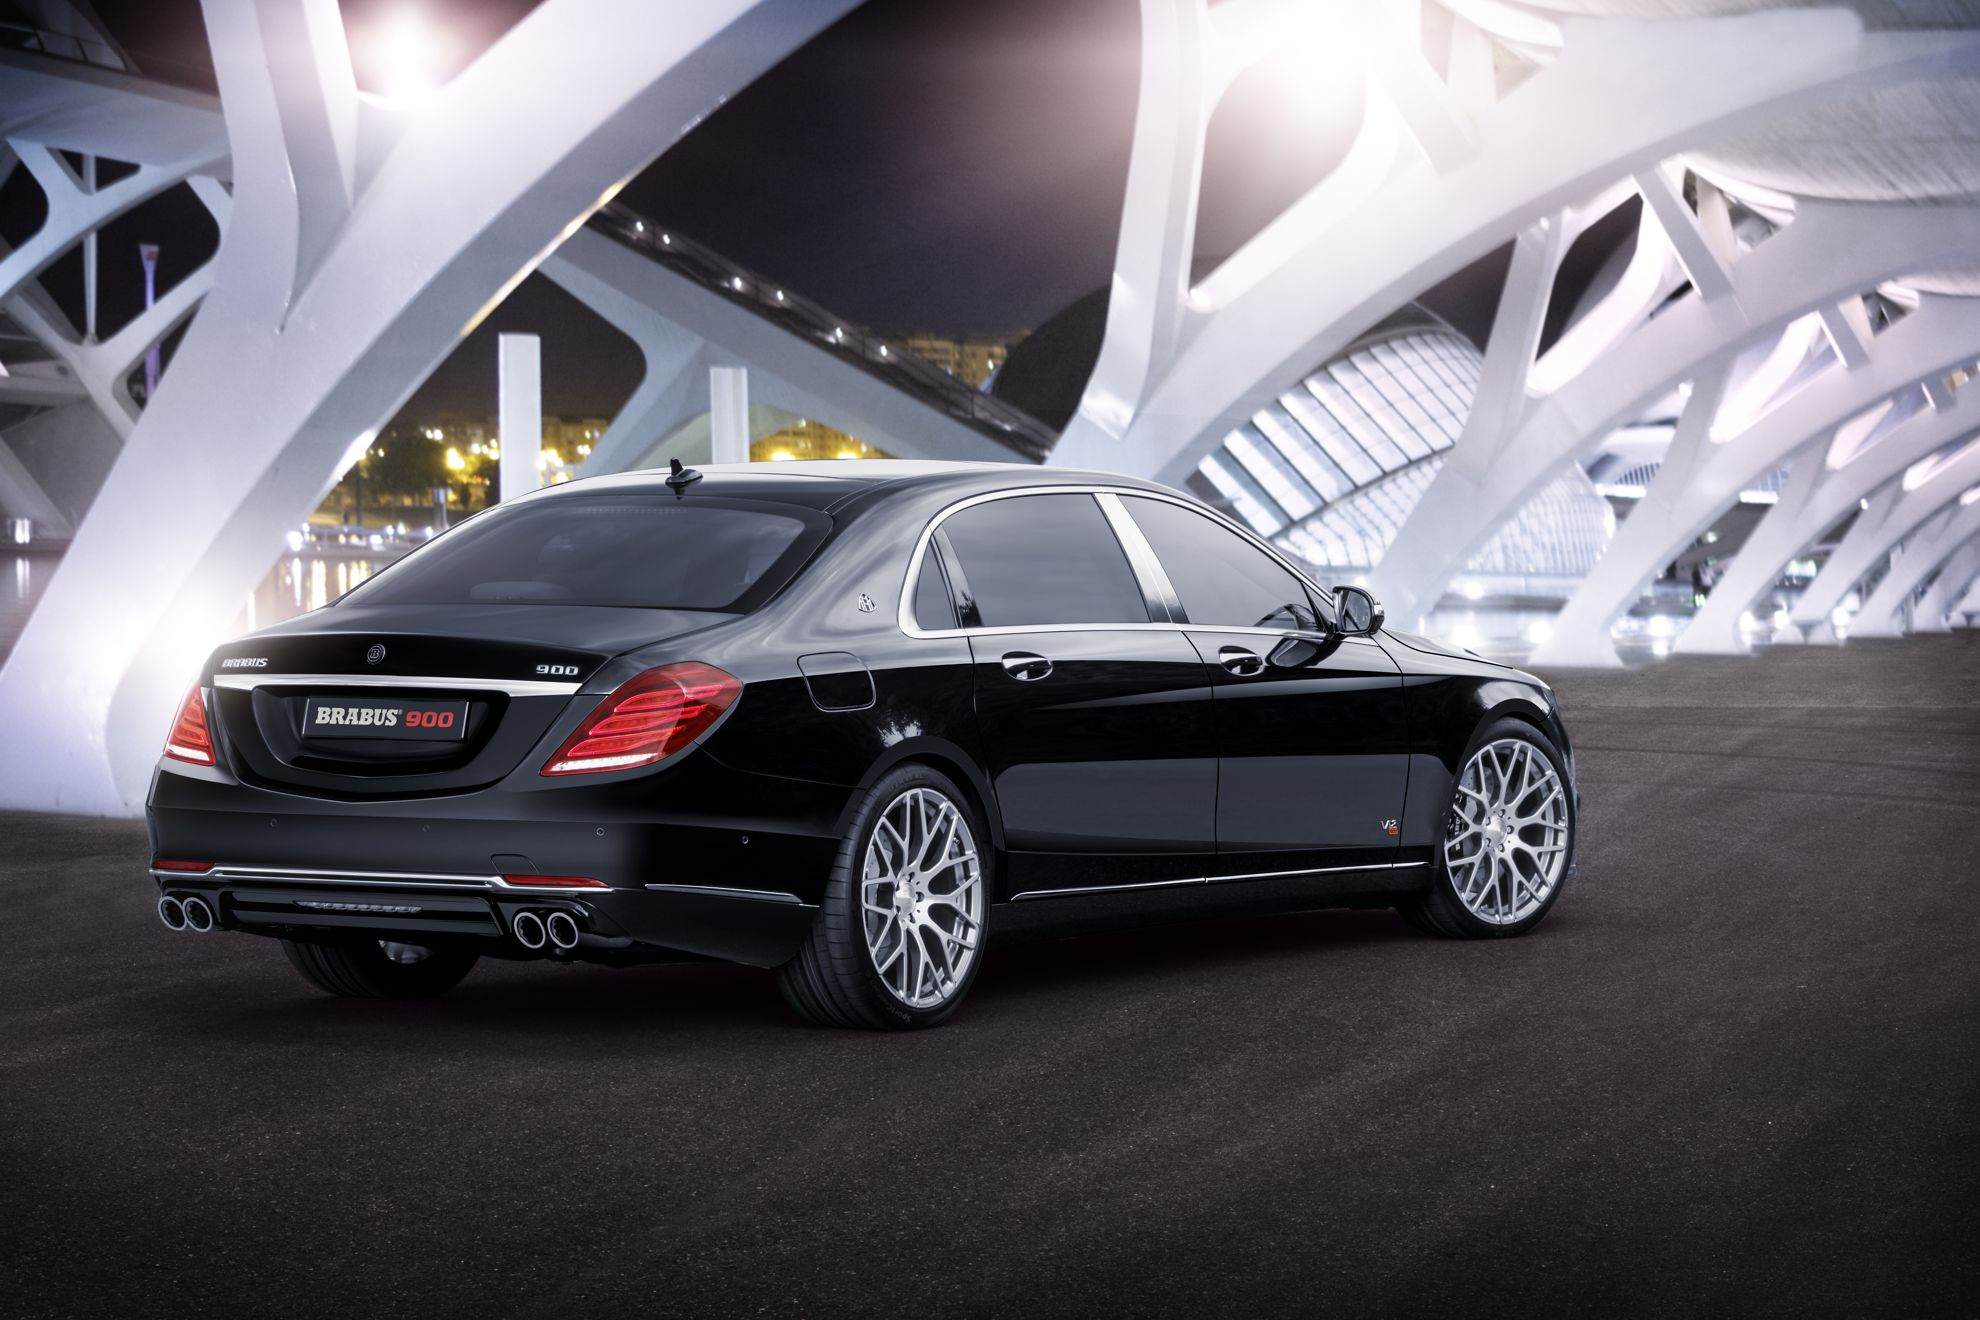 brabus-900-mercedes-maybach